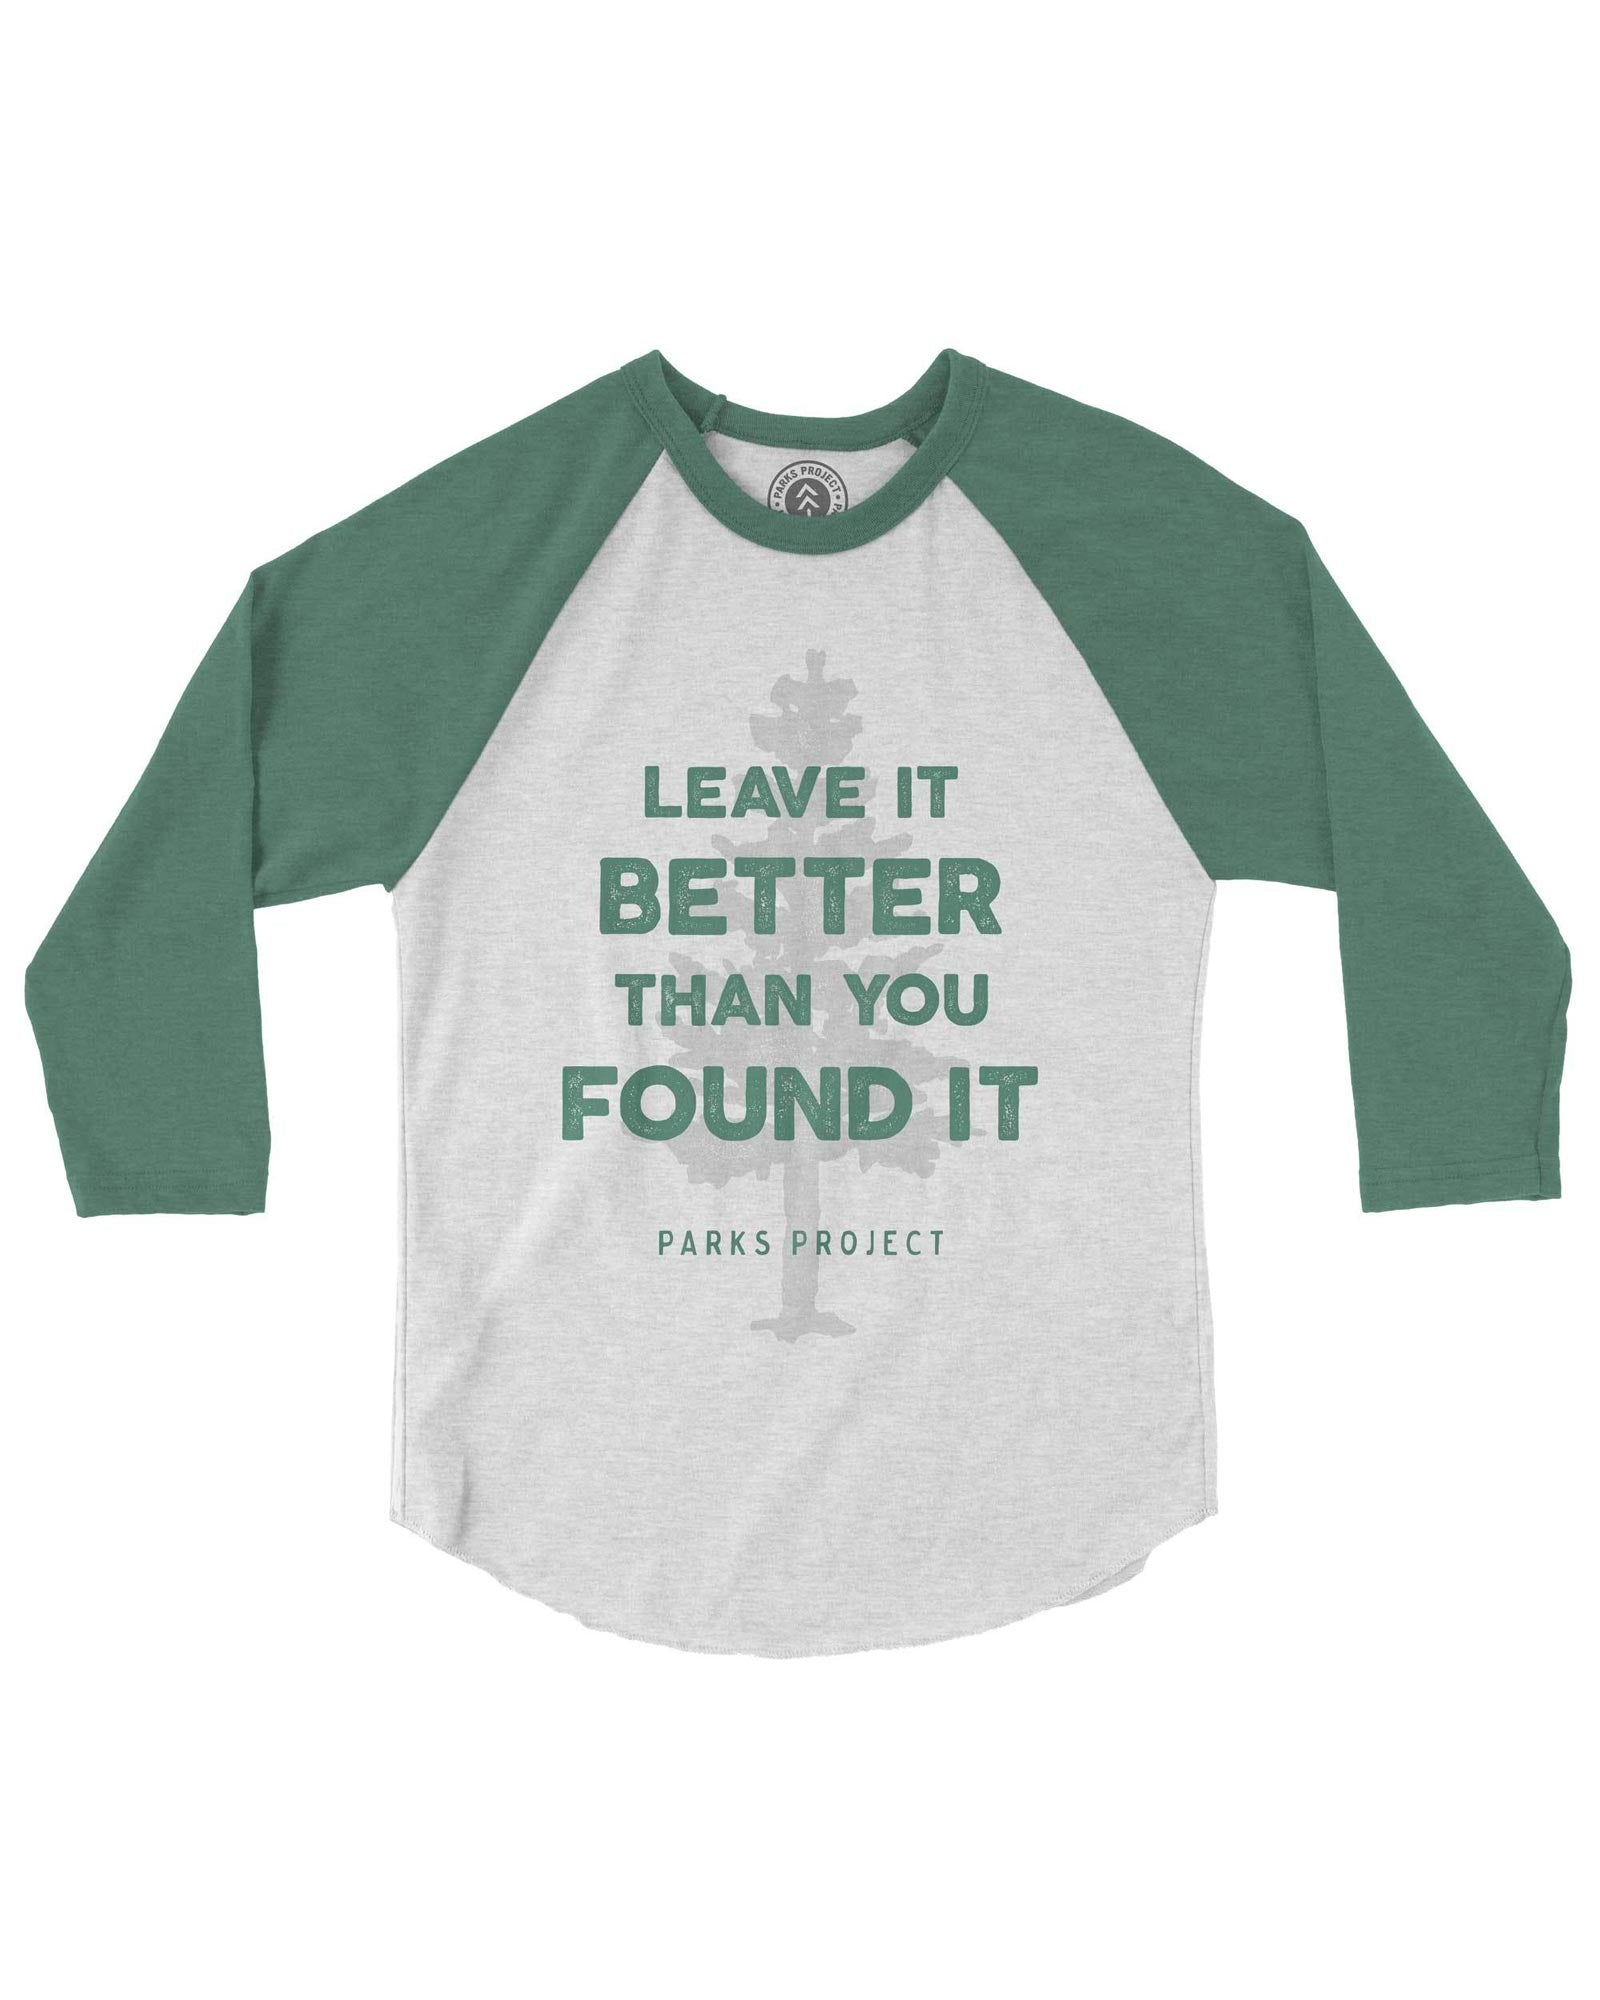 Leave It Better Tree Youth Raglan | Parks Project | National Parks Raglan